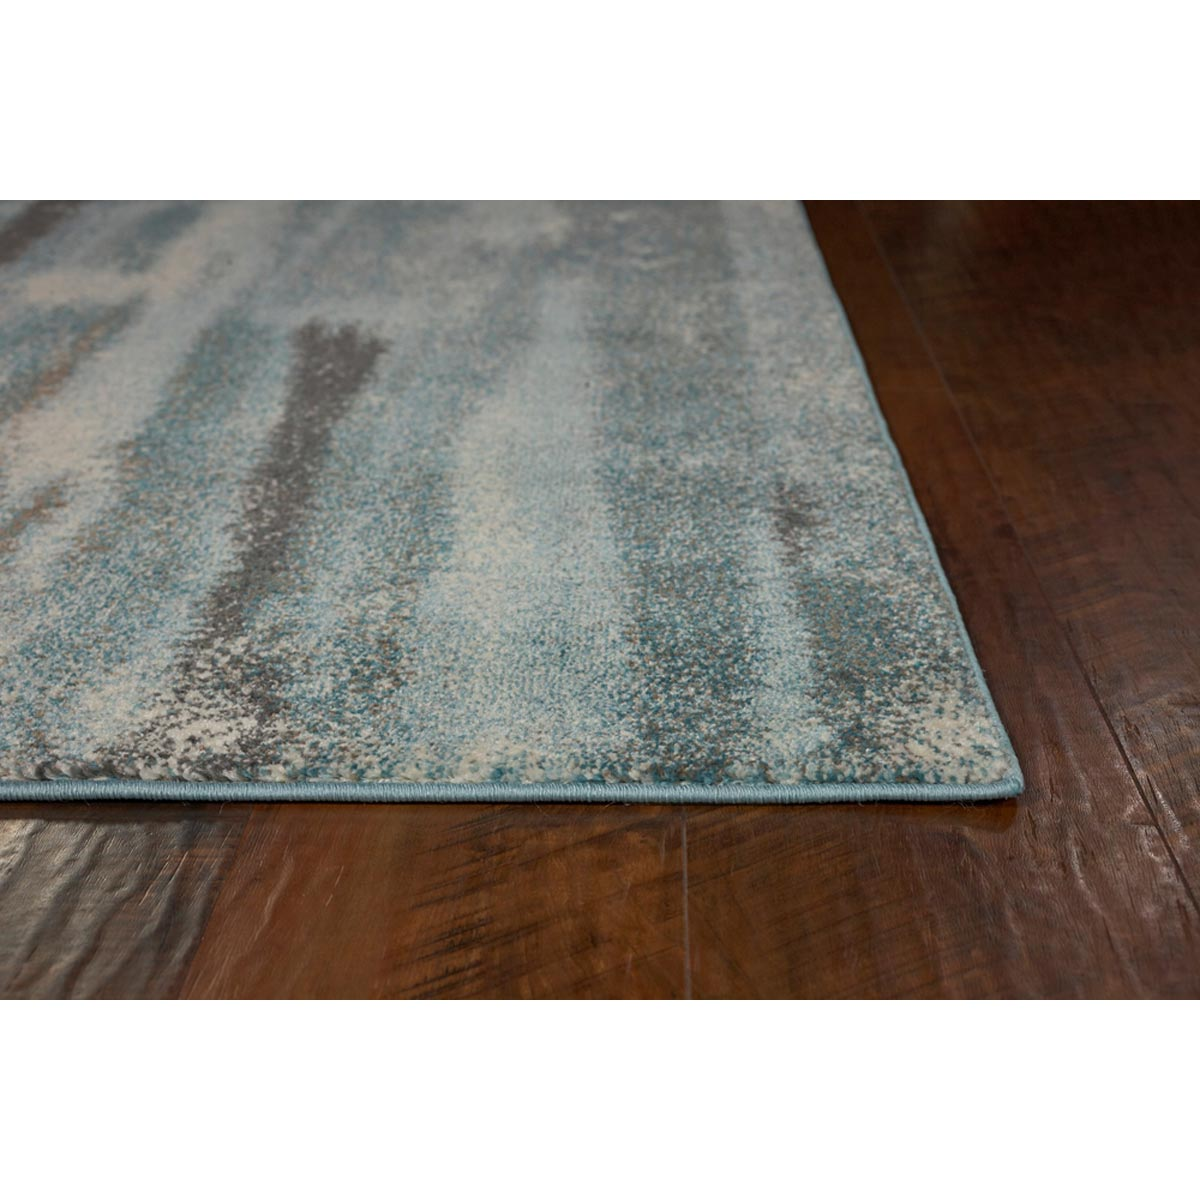 KAS 5 ft. 3 in. x 7 ft. 7 in. Illusions Teal Moderne Area Rug